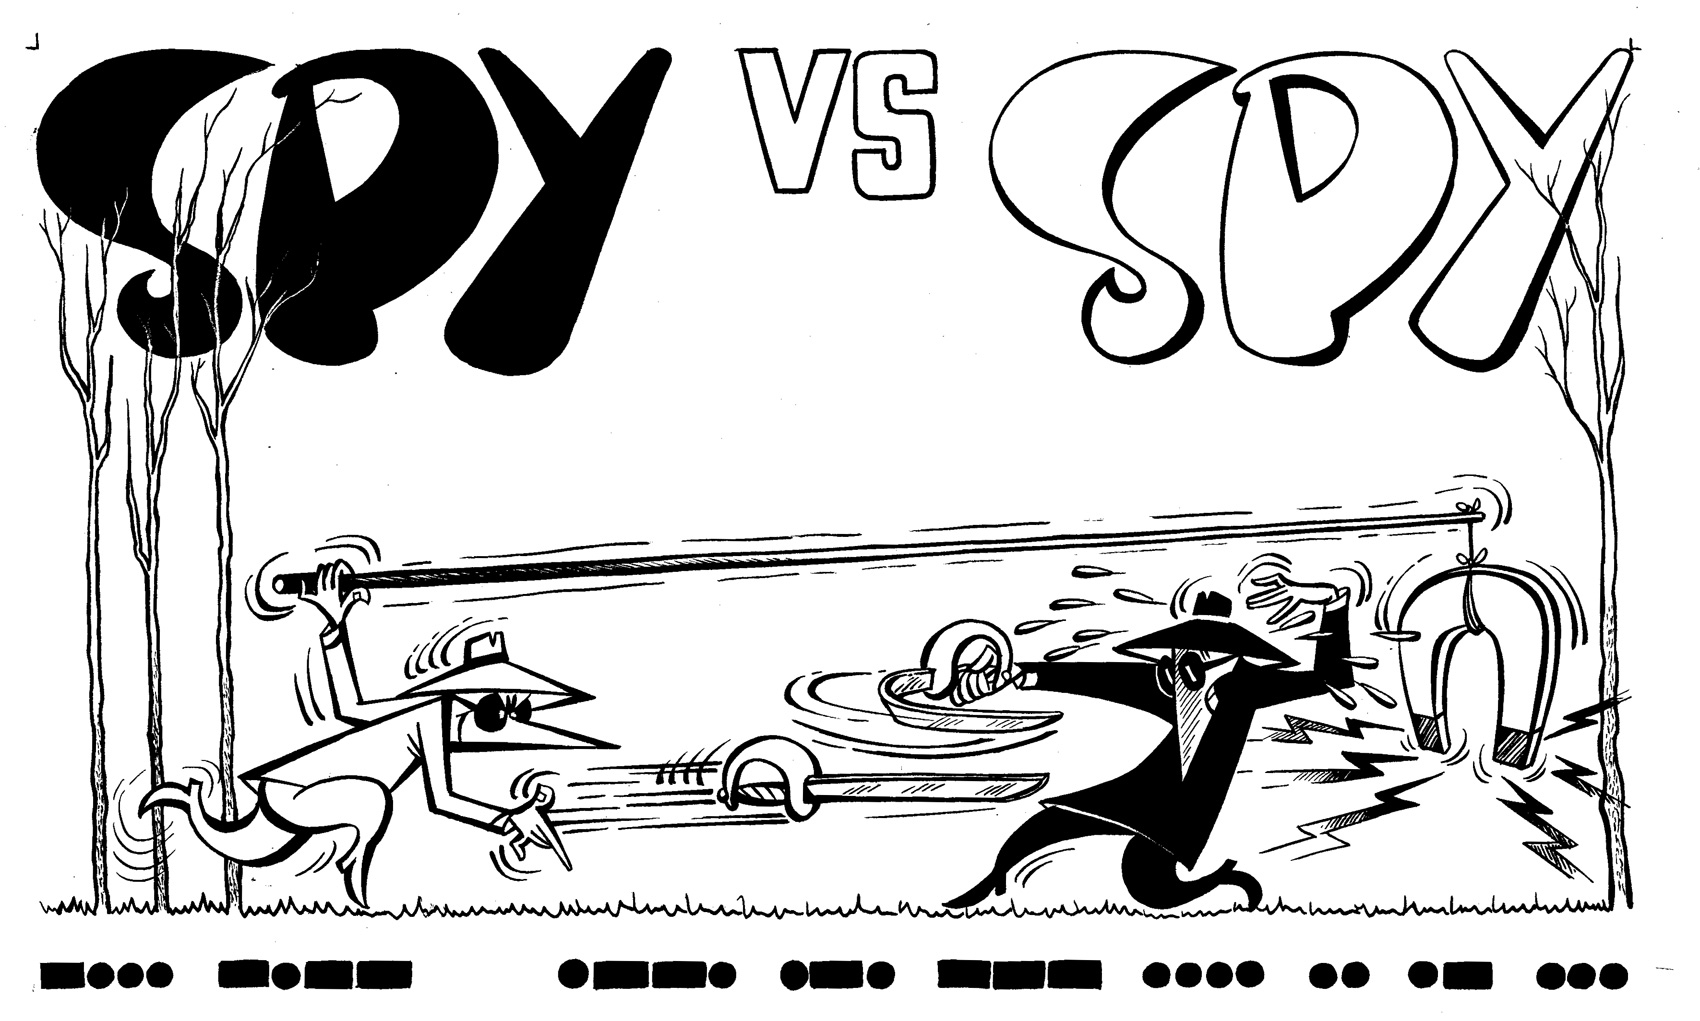 Spy vs Spy: MAD #87 Top, in Brian Peck's iSpy some MAD Art